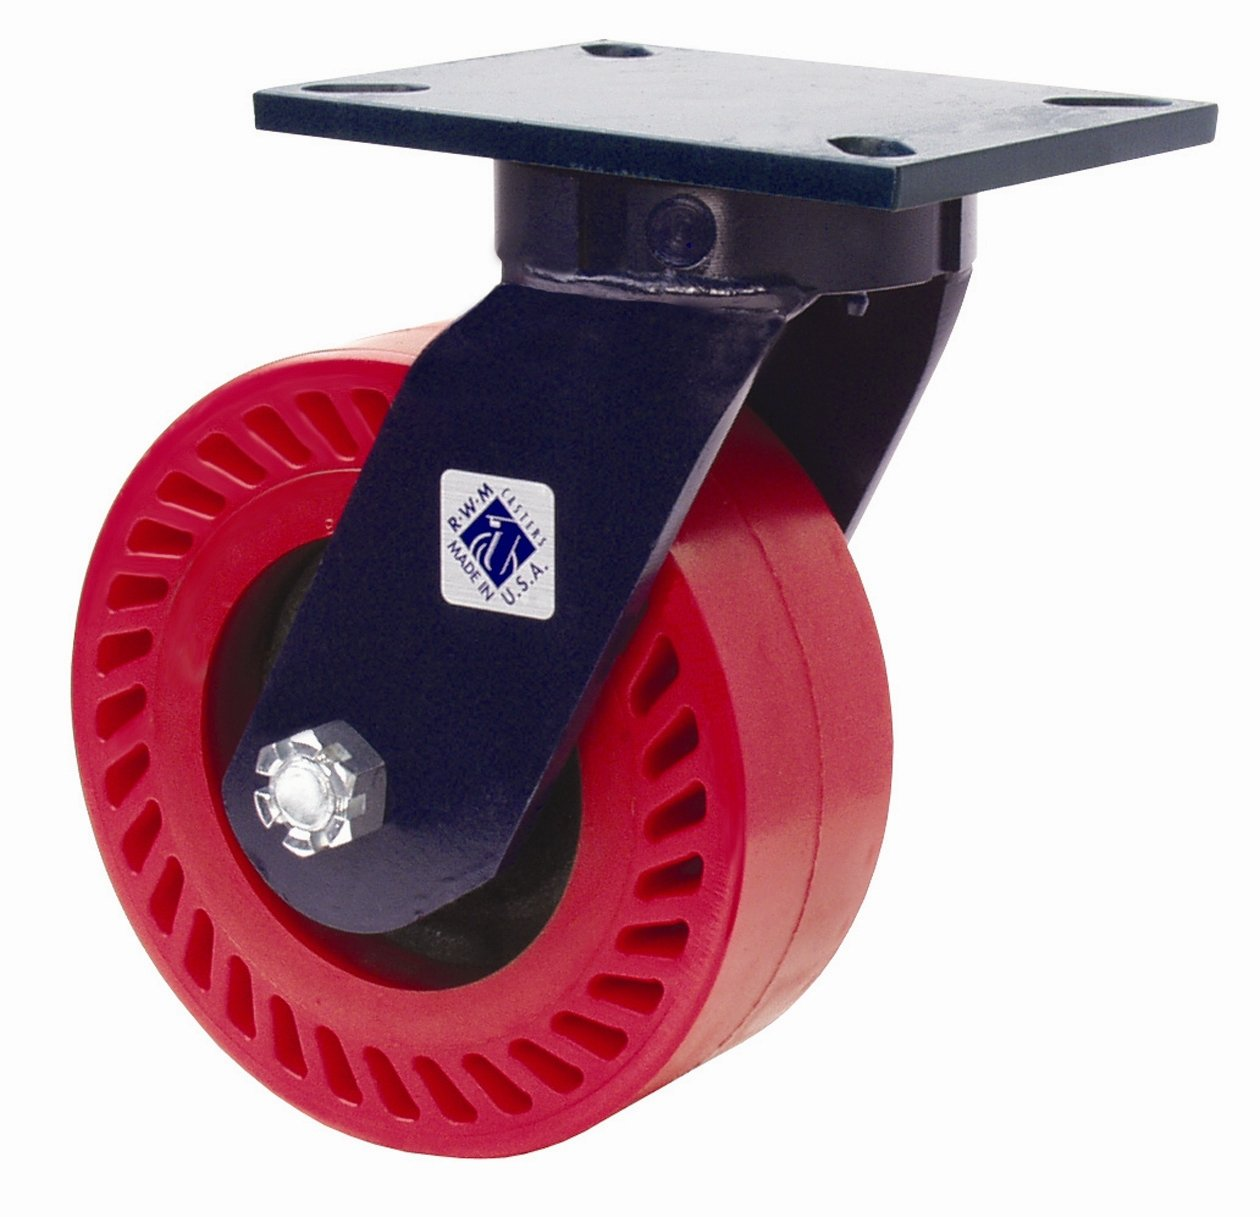 RWM Casters 76 Series Plate Caster, Swivel, Kingpinless, Steel Wheel, Tapered Roller Bearing, 5500 lbs Capacity, 8'' Wheel Dia, 3'' Wheel Width, 10-1/2'' Mount Height, 7-1/4'' Plate Length, 5-1/4'' Plate Width